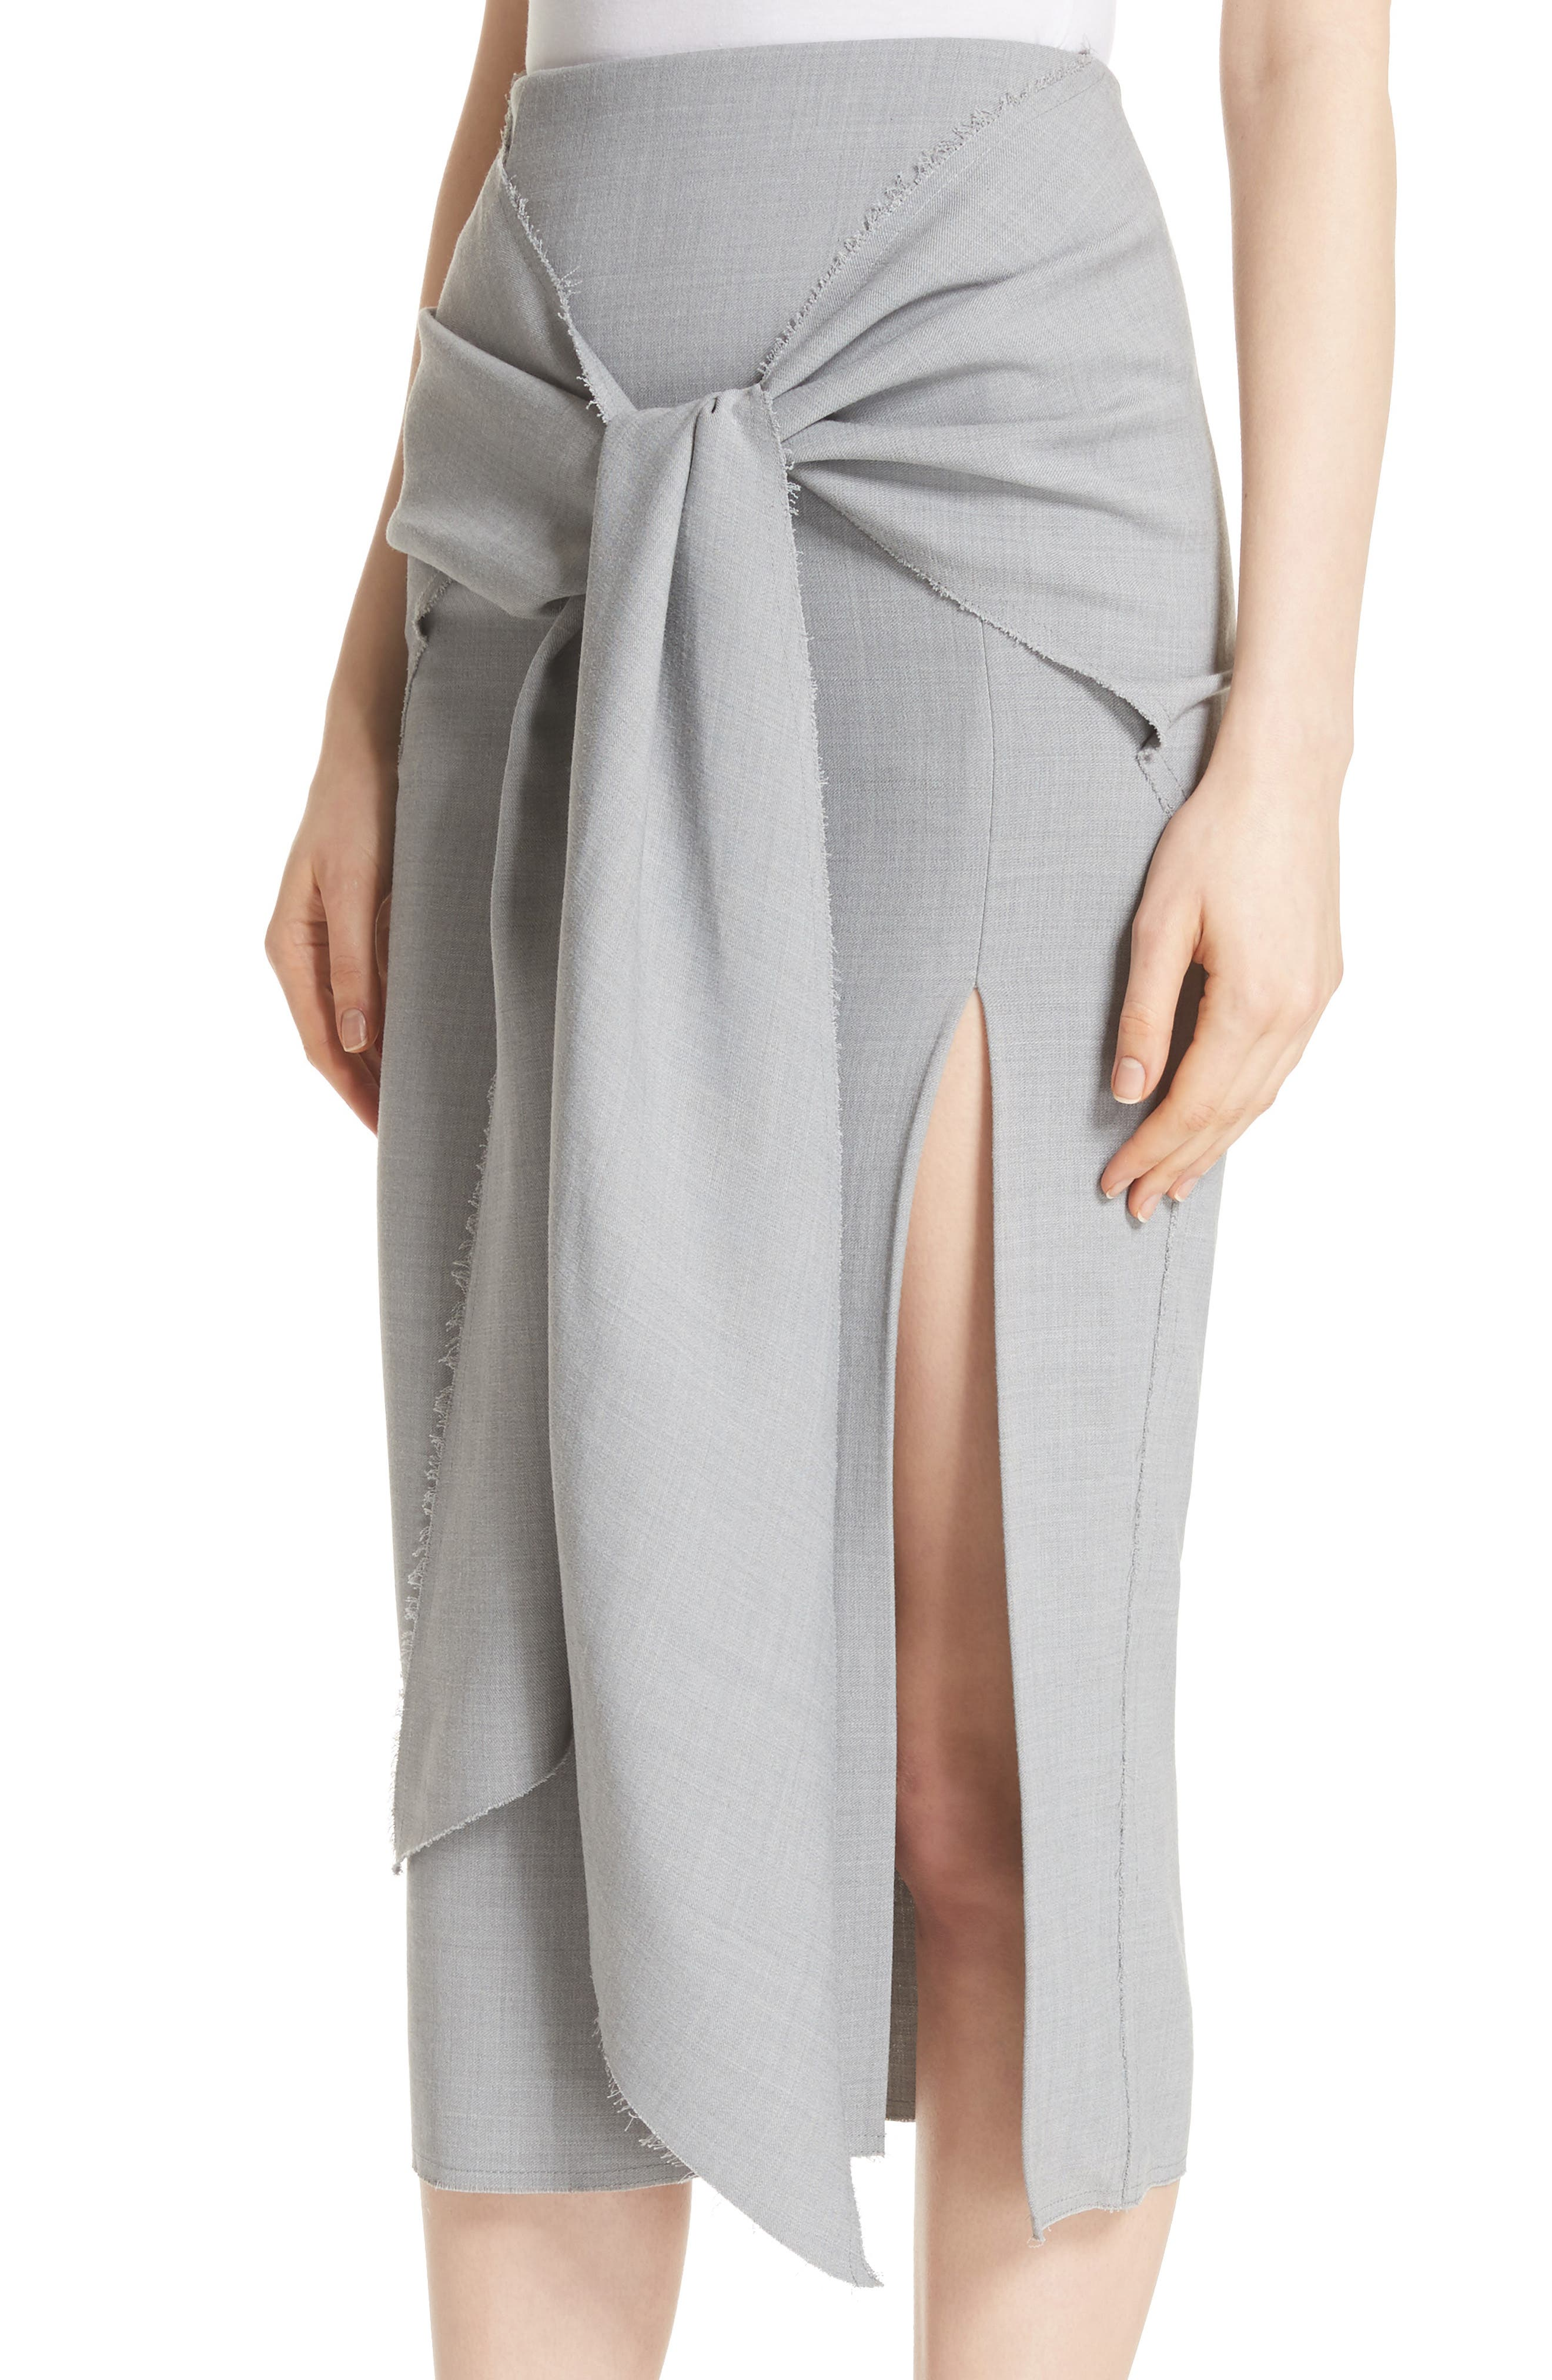 Jason Wu Raw Hem Tie Front Skirt,                             Alternate thumbnail 4, color,                             058